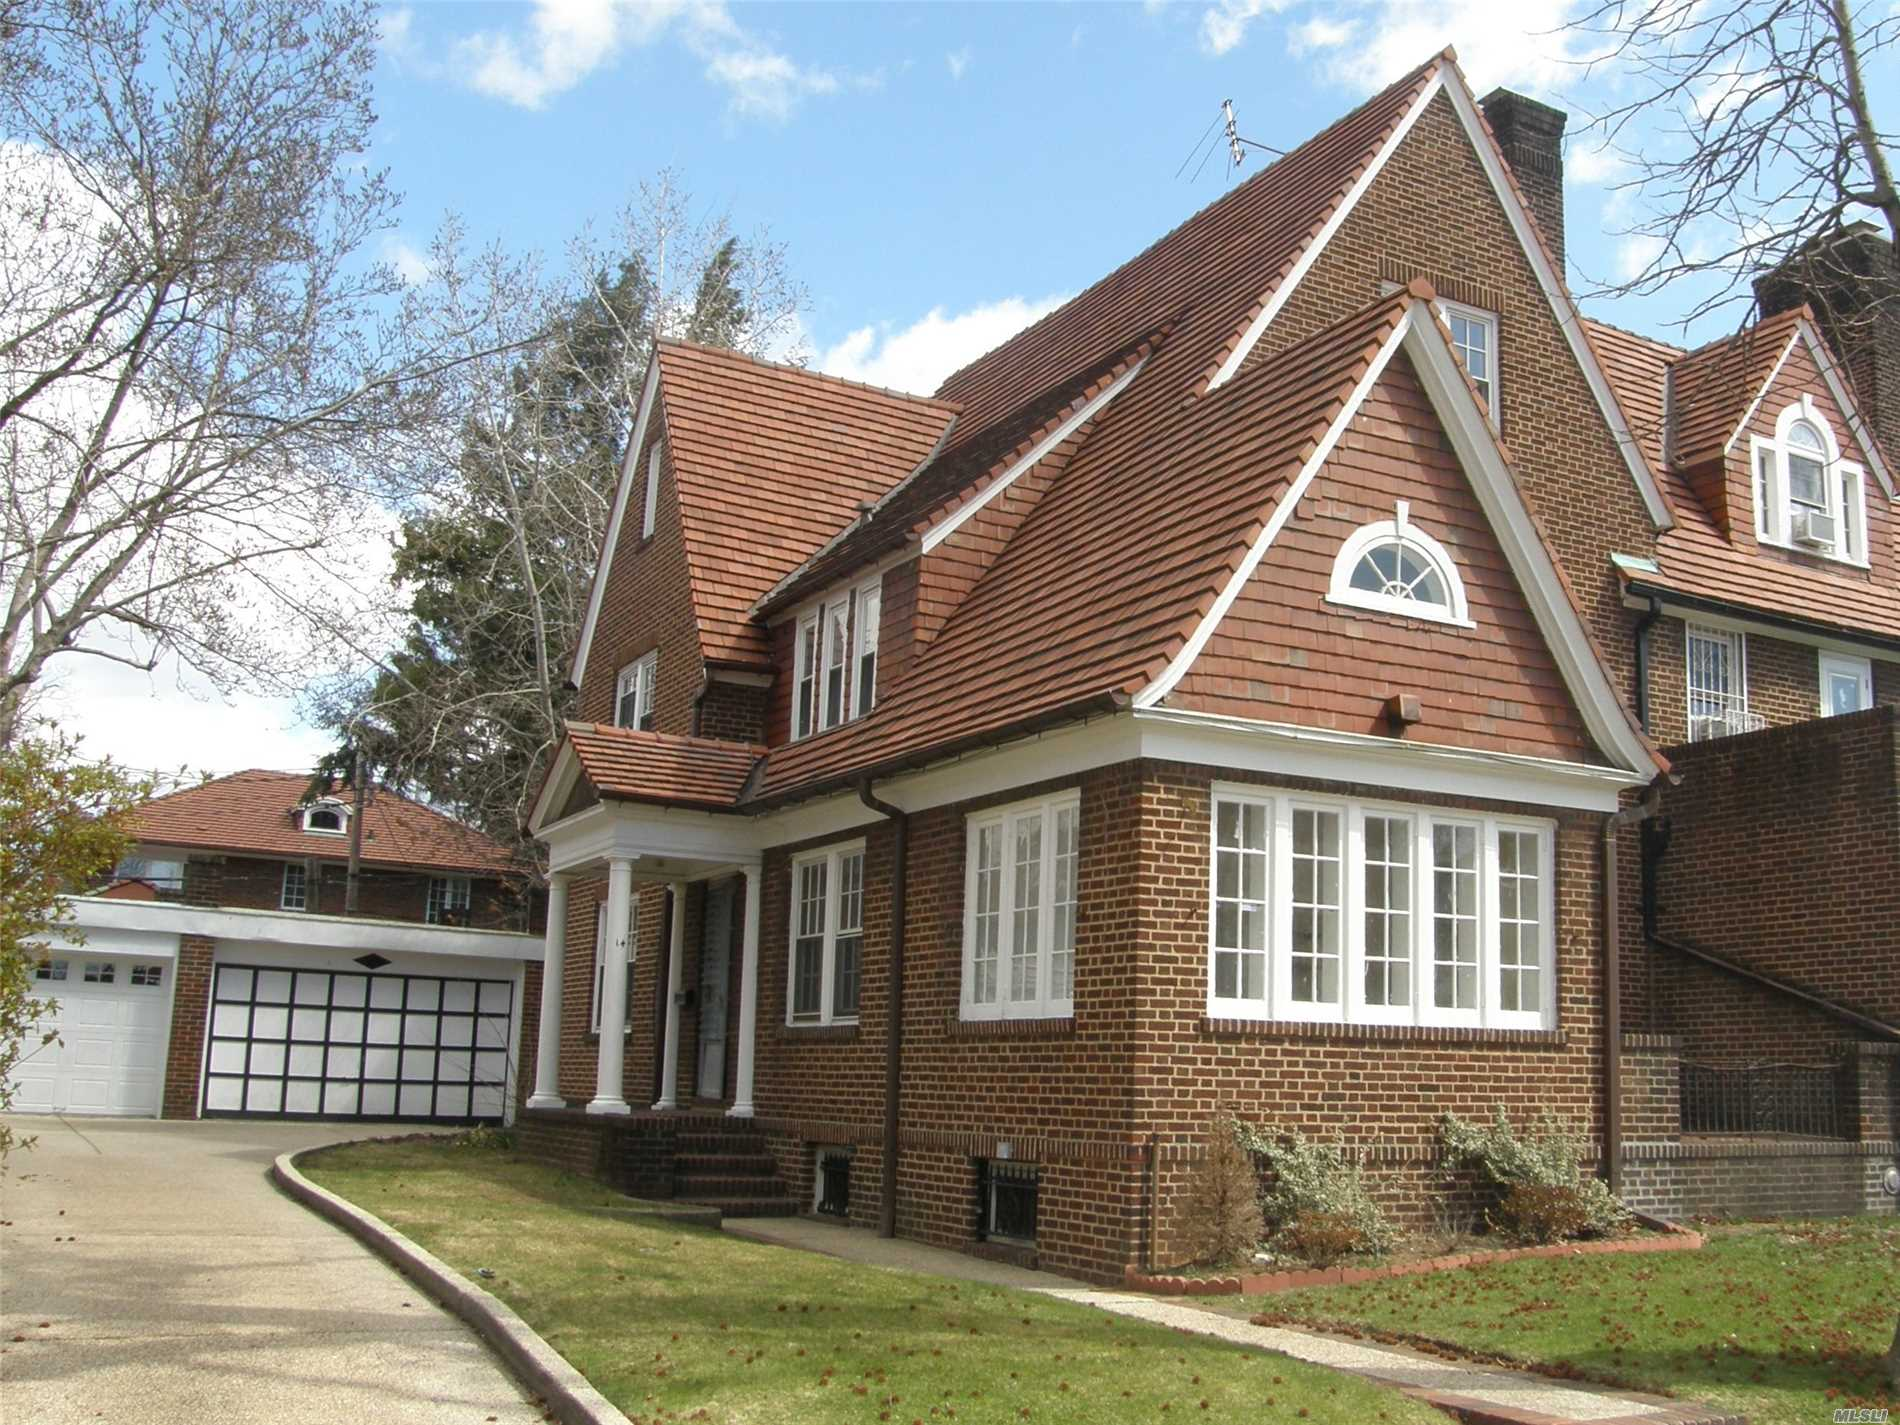 Classic Forest Hills Gardens Center Hall Colonial, Huge Master Bedroom With In Suite Bath. 5 Total Bedrooms Impressive Living And Formal Dining Rooms Are Ready To Entertain. Location, Location, Location. Quiet Tree-Lined Street, Yet 5 Min To The Subways Or The Lirr. Great Schools